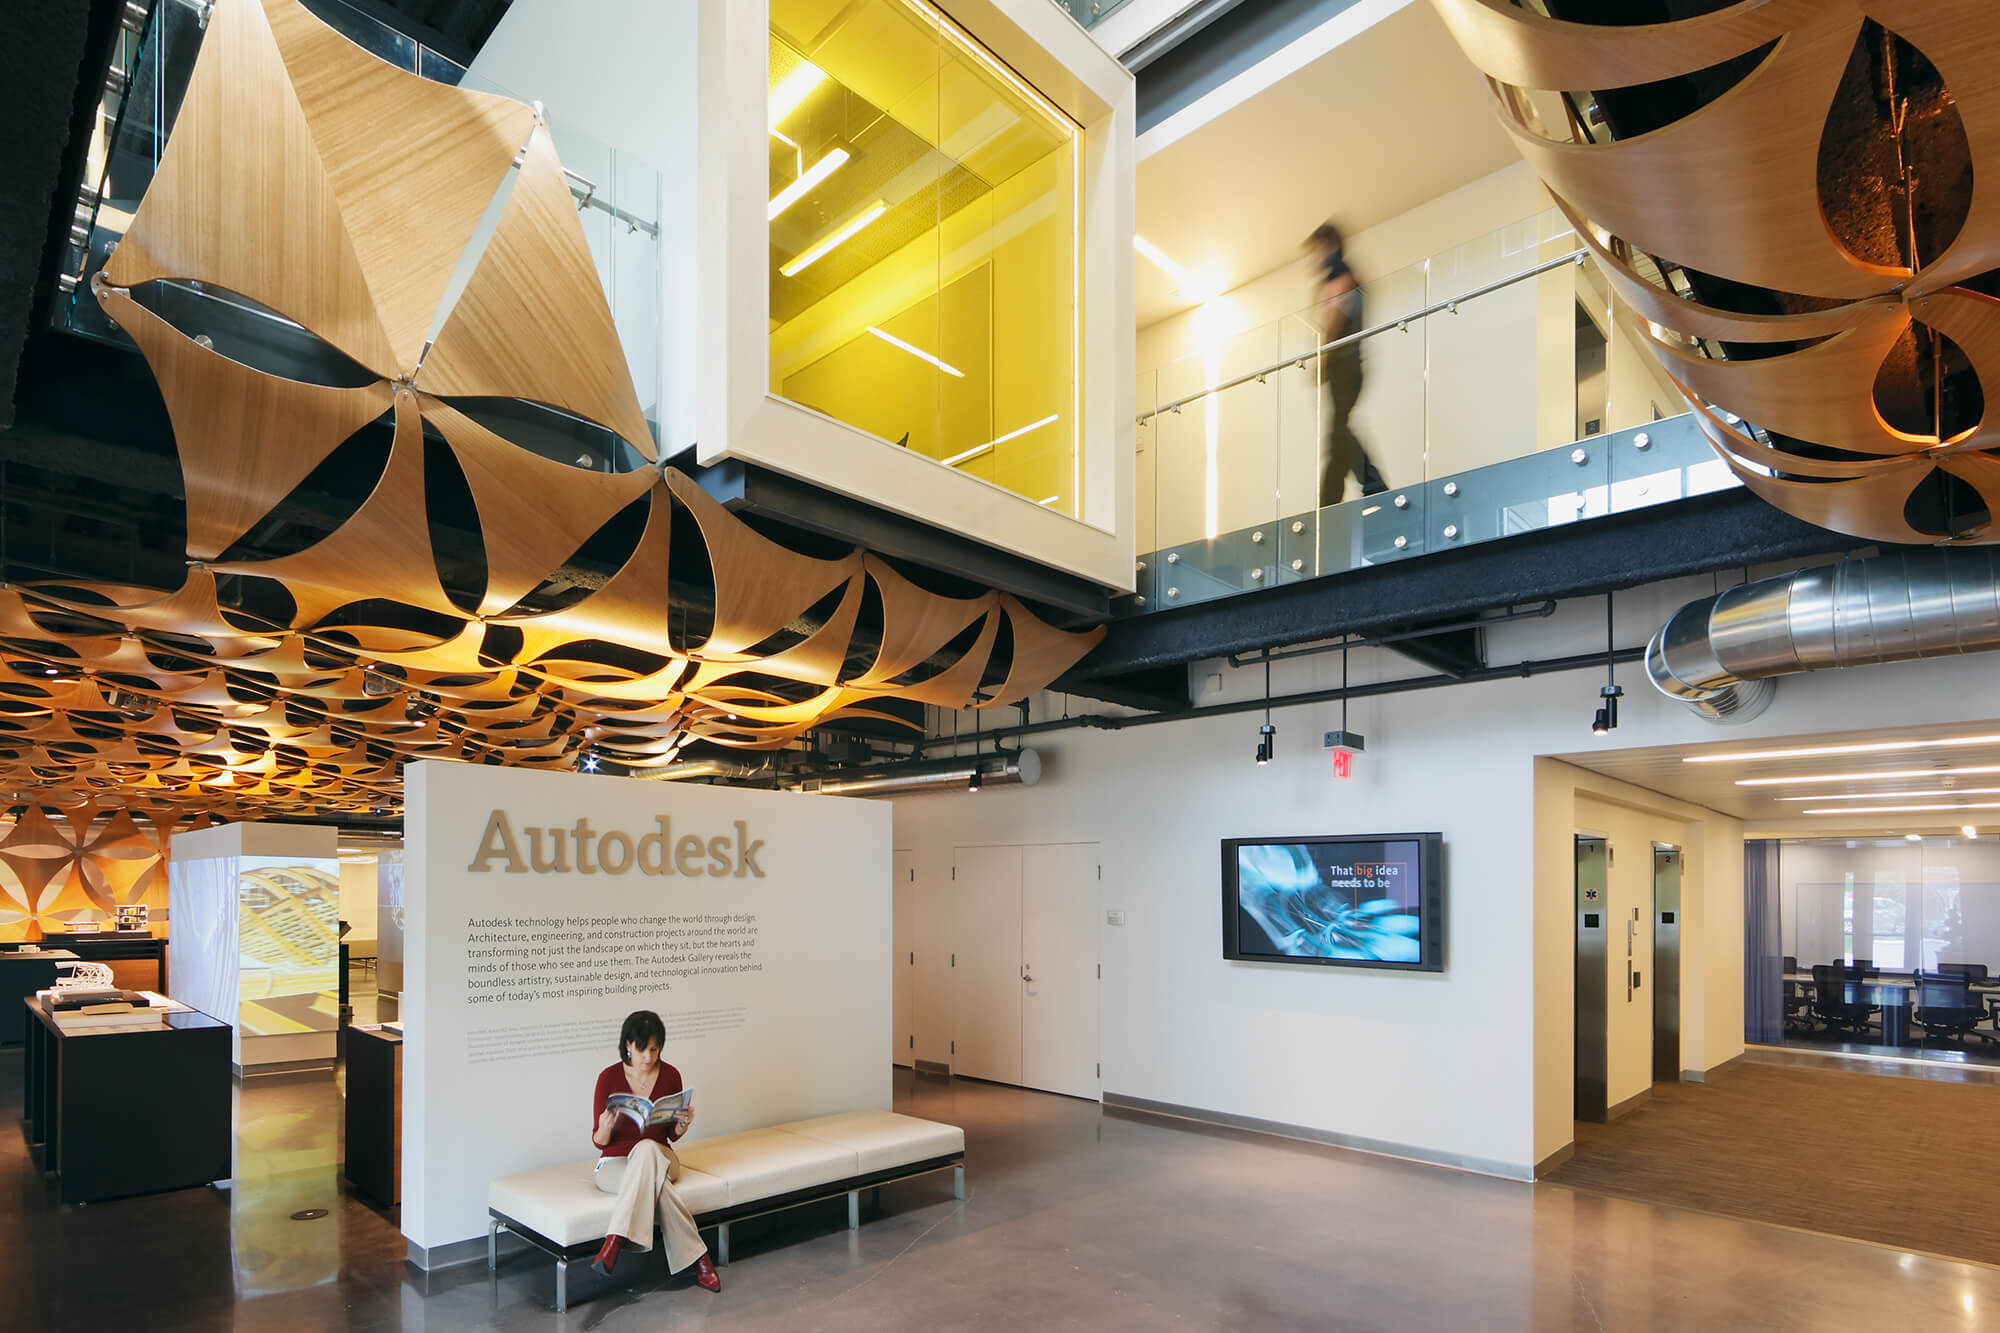 Autodesk Headquarters - Boston, MA